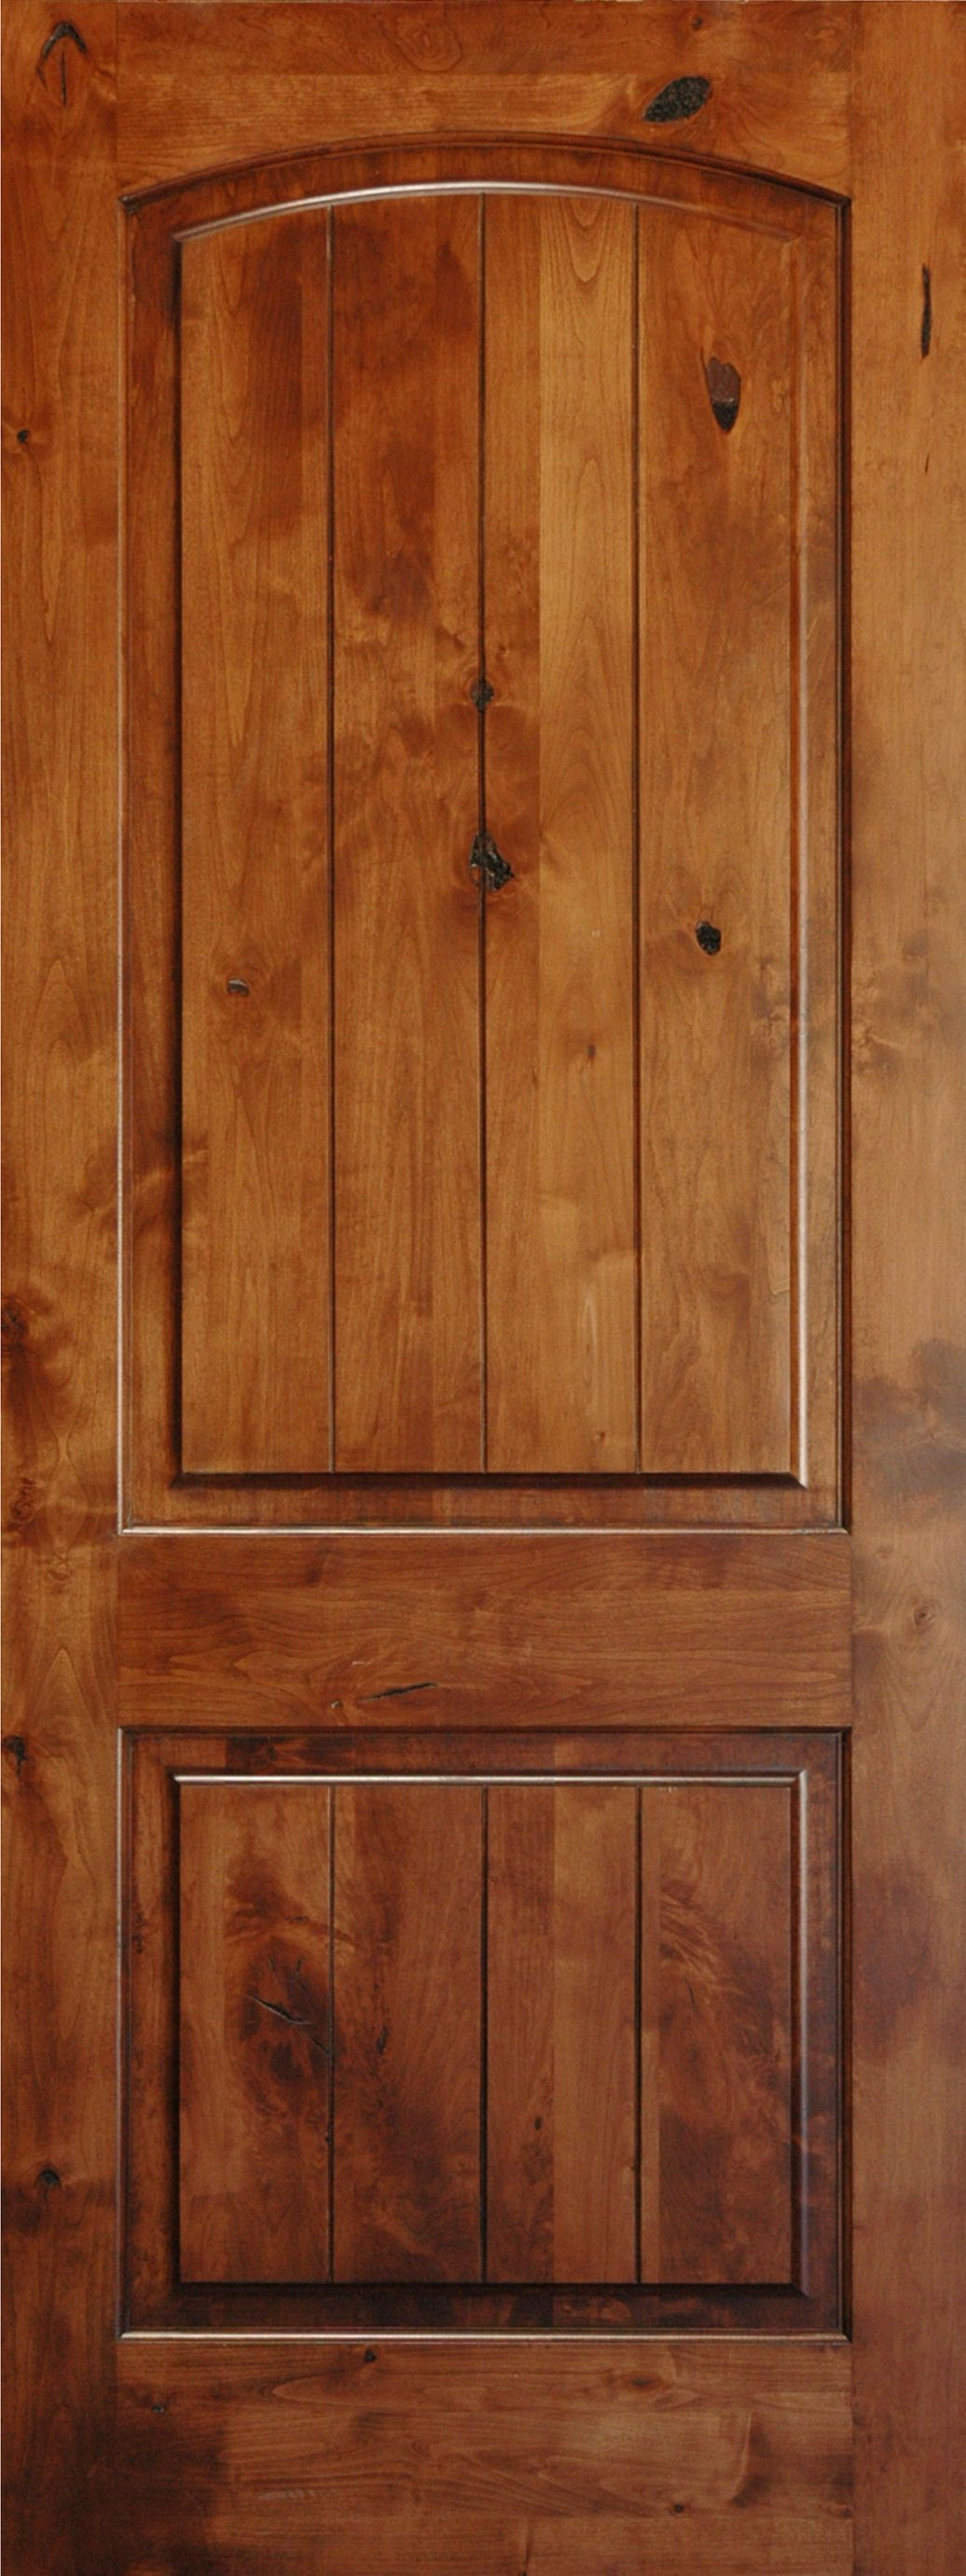 Panel doors pine doors knotty alder and arch for Arch door design